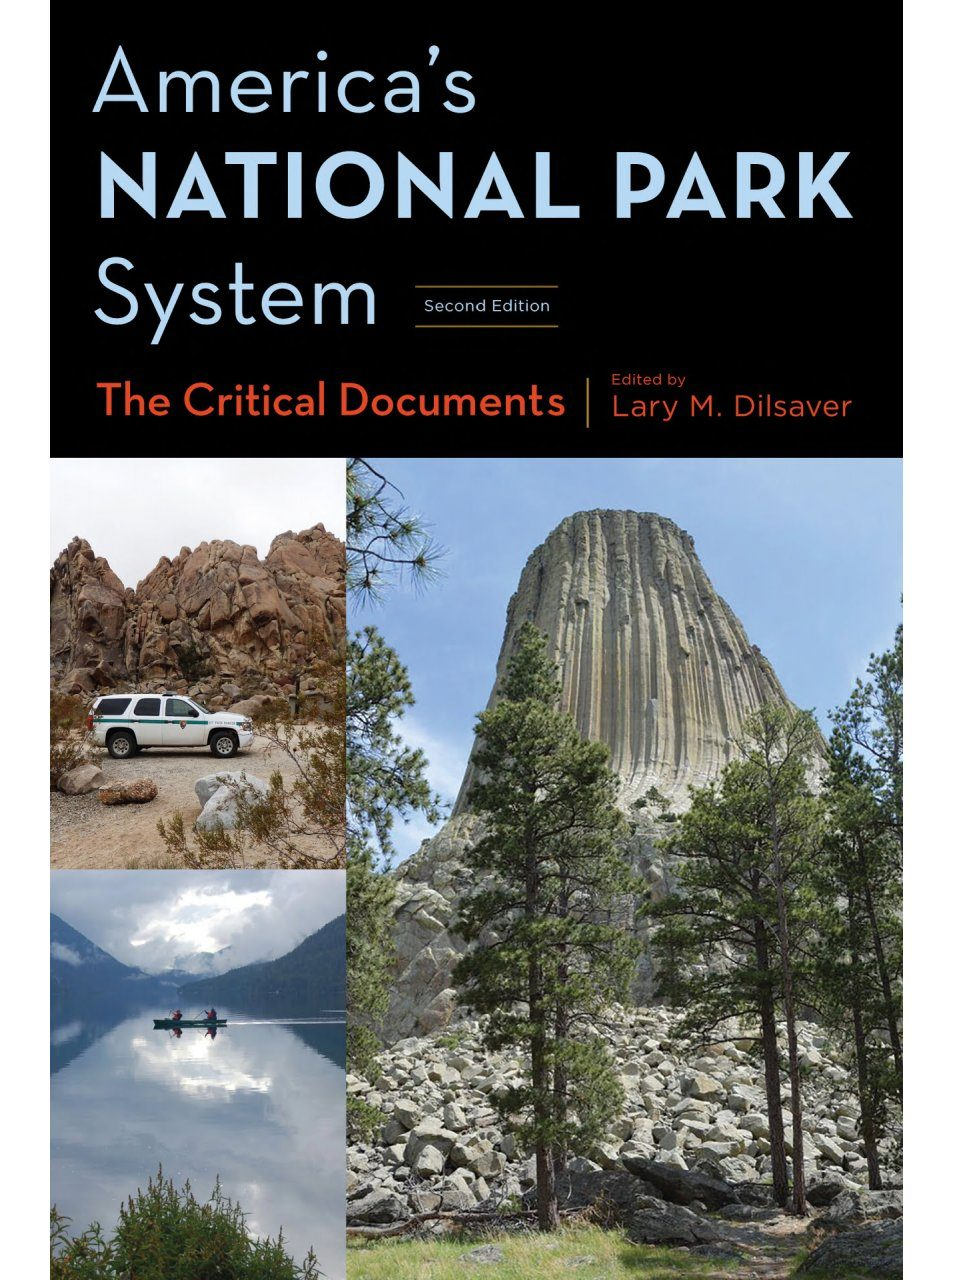 America's National Park System